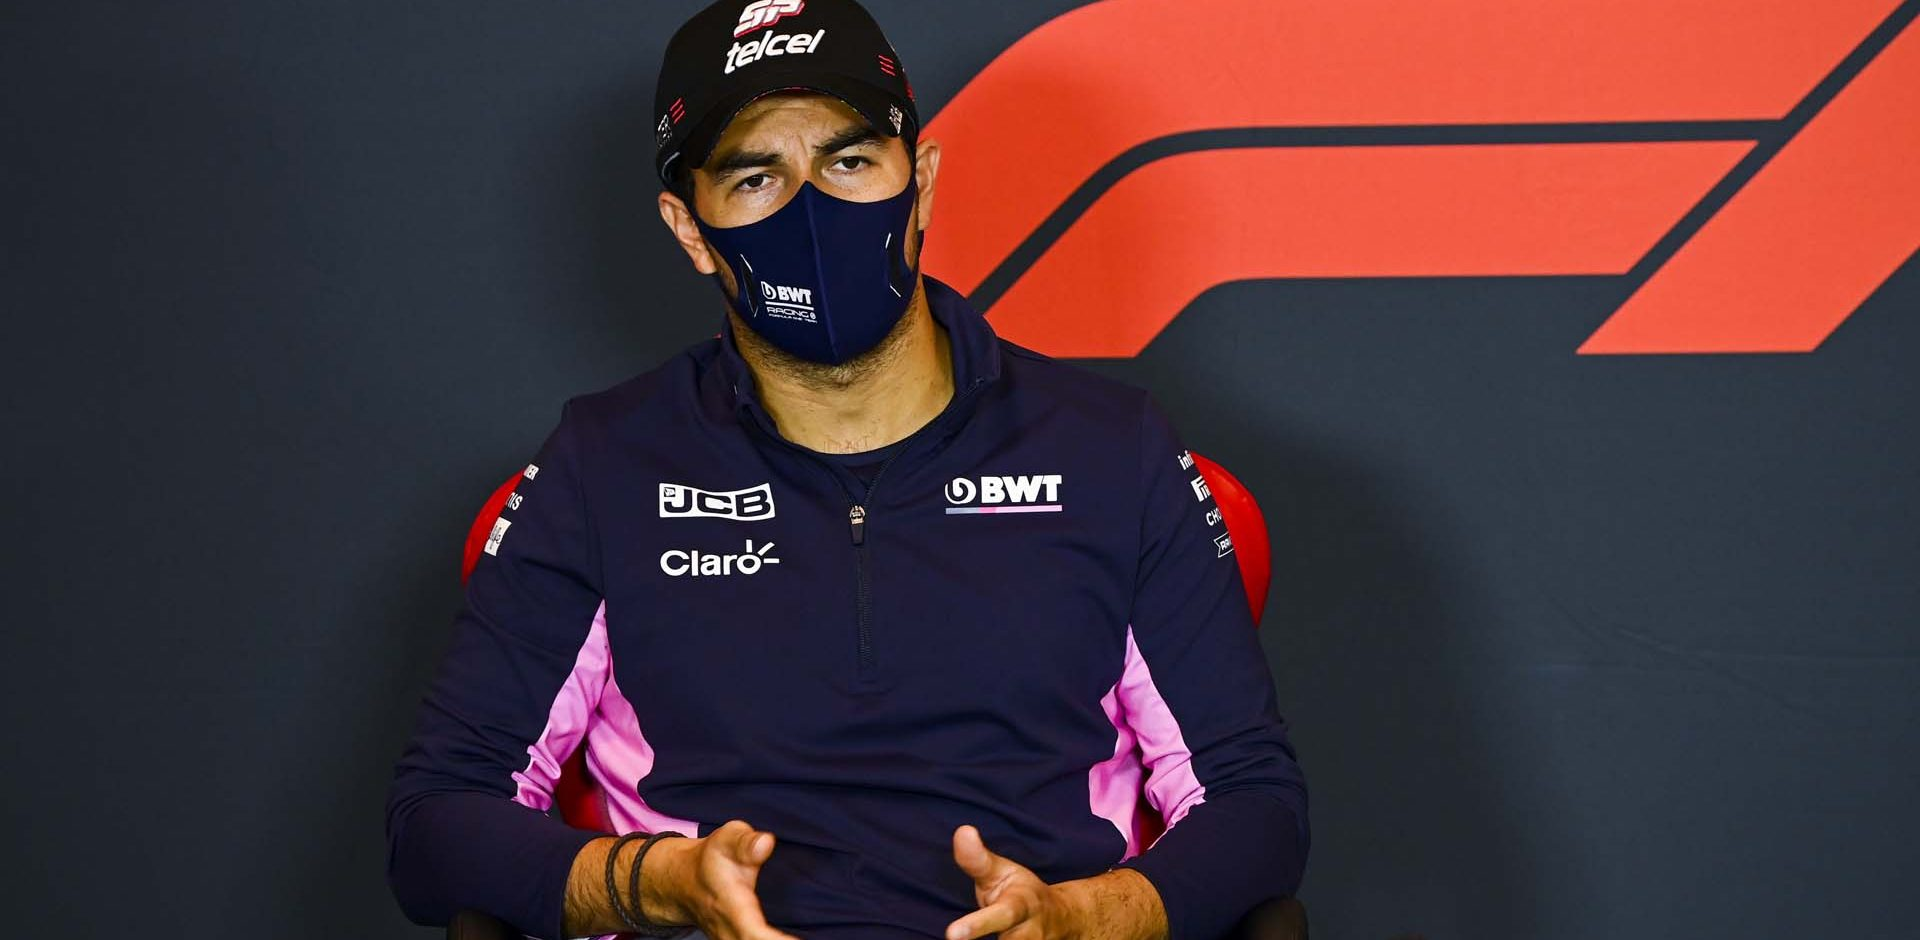 Sergio Perez, Racing Point, in a Press Conference